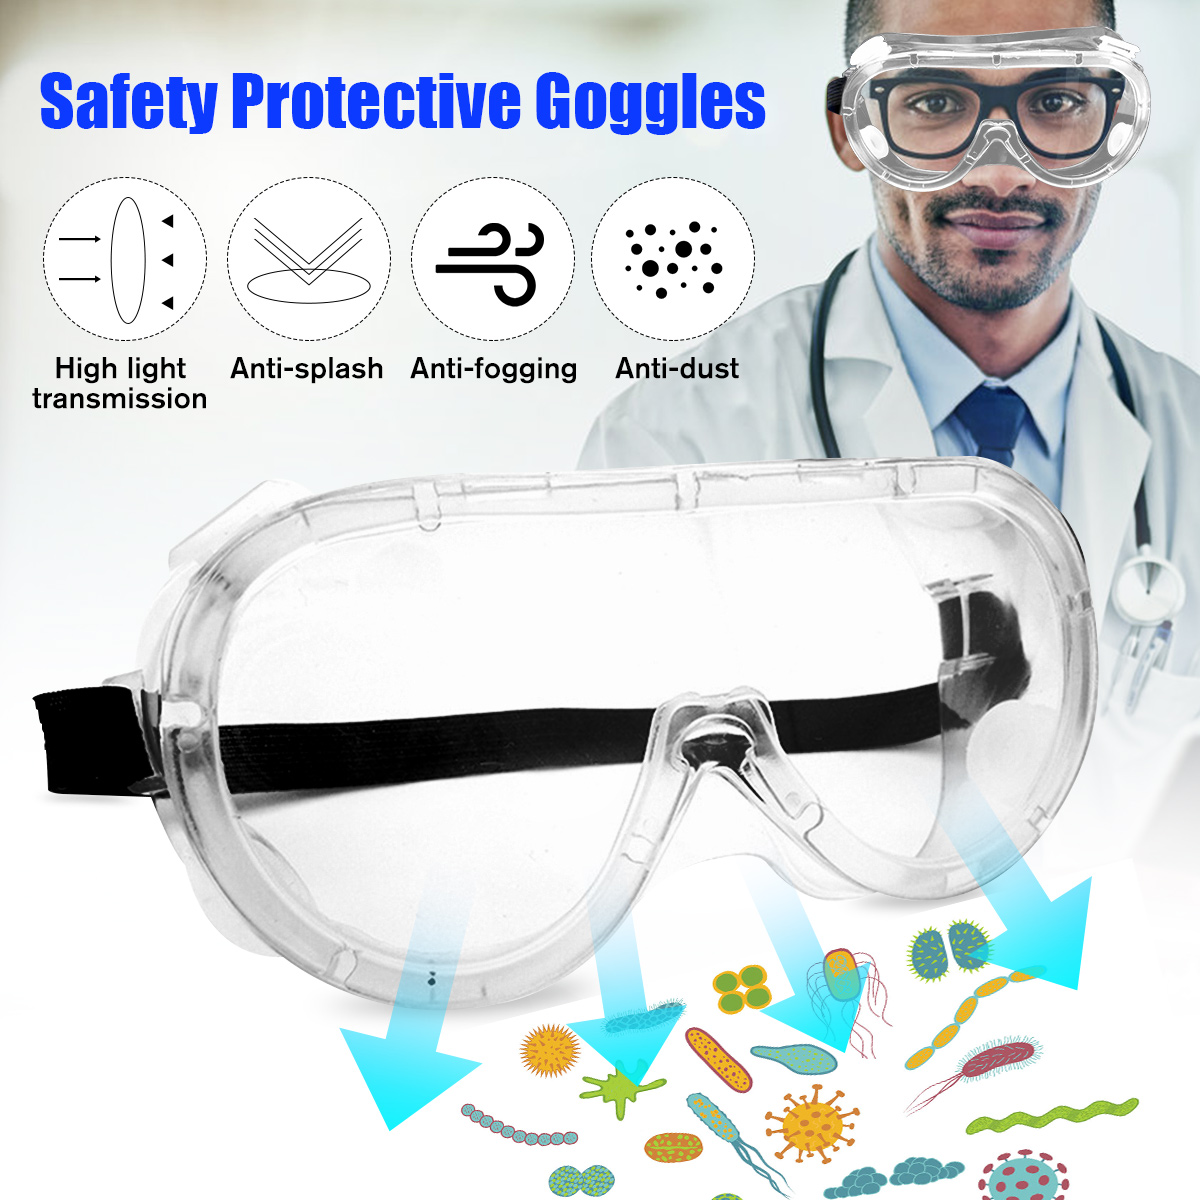 New Safety Protective Goggles Glasses Transparent Lens Goggles Prevent Infection Eye Mask Anti-Fog Splash Goggles